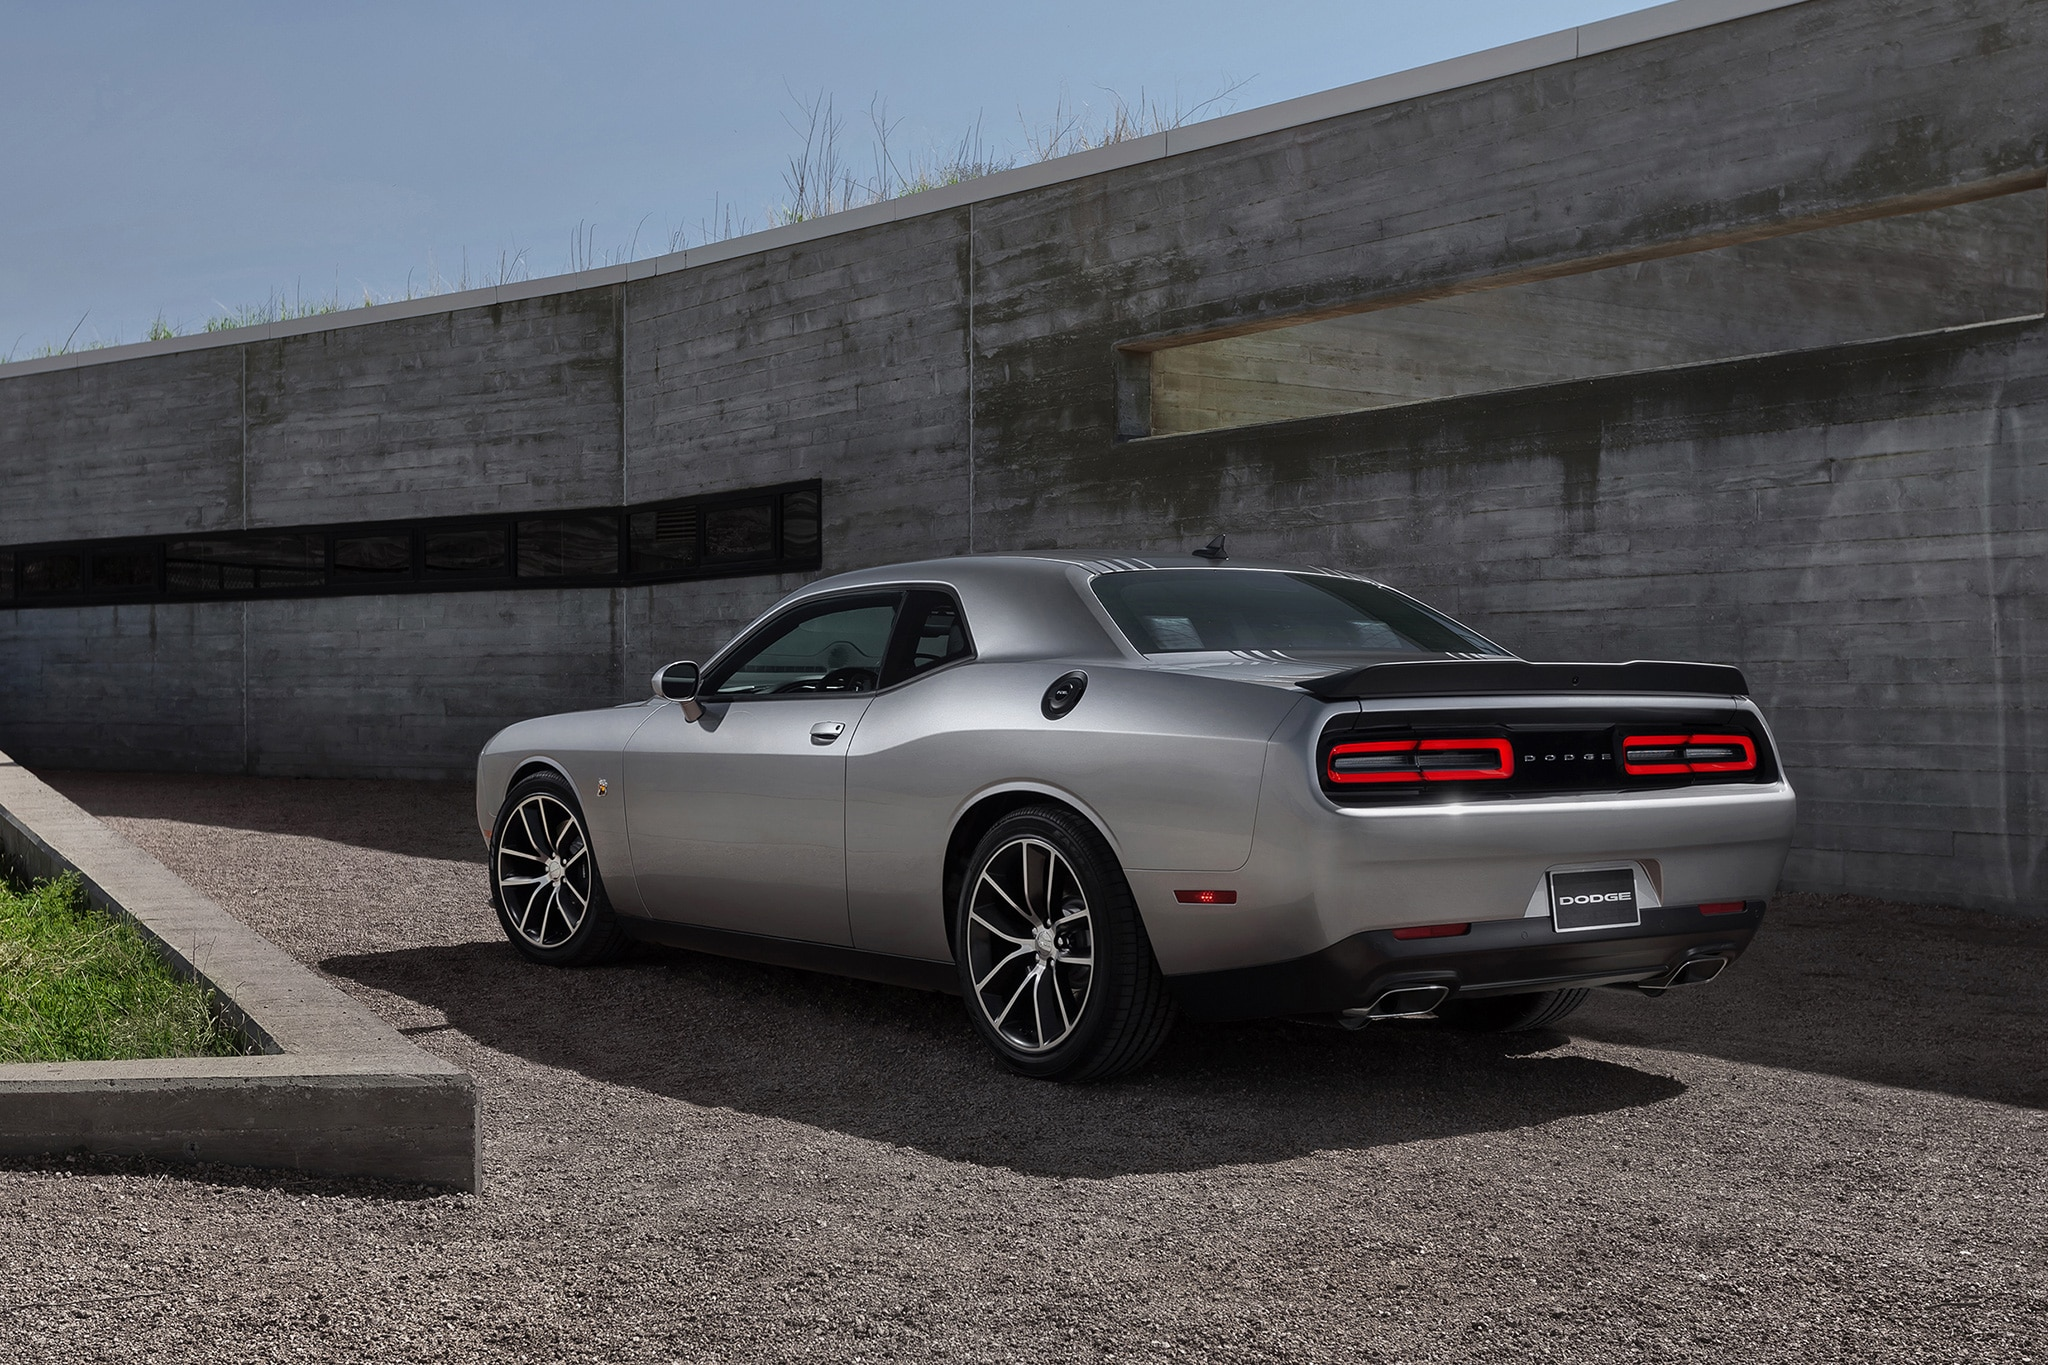 2017 dodge challenger t a and charger daytona add retro flair more muscle automobile magazine. Black Bedroom Furniture Sets. Home Design Ideas